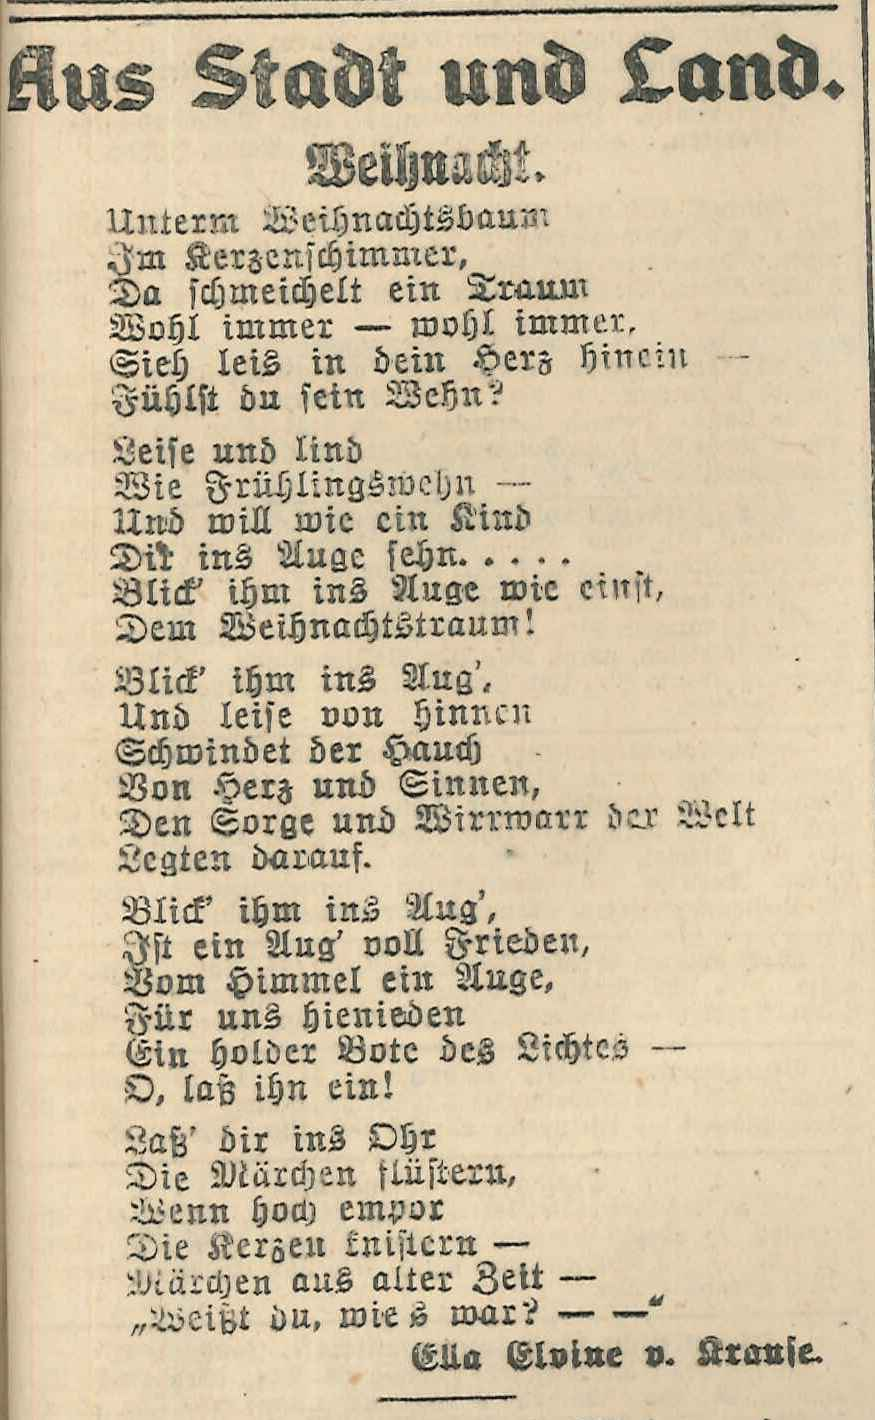 gedicht 1914 1918 ein rheinisches tagebuch. Black Bedroom Furniture Sets. Home Design Ideas